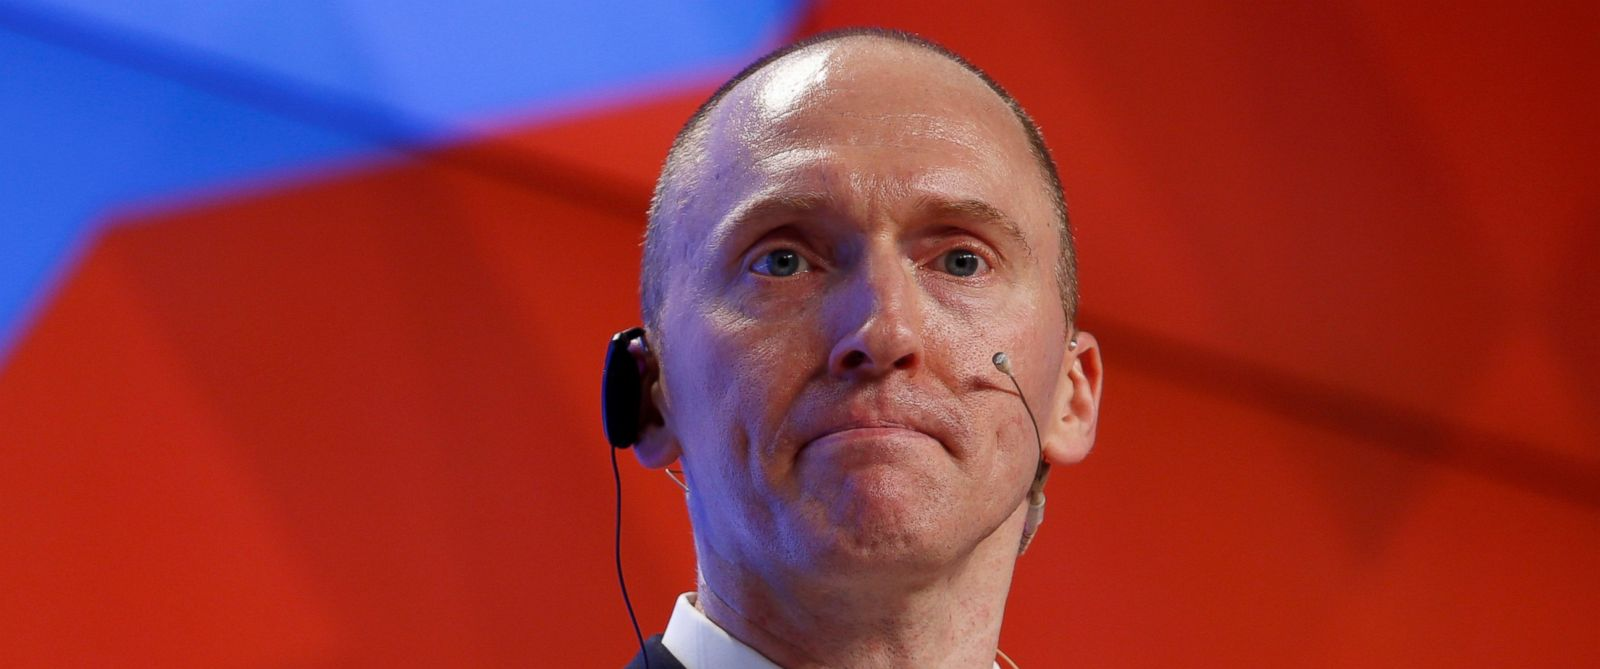 PHOTO: FILE PHOTO: One-time advisor of President Donald Trump, Carter Page addresses the audience during a presentation in Moscow, Dec. 12, 2016. REUTERS/Sergei Karpukhin/File Photo